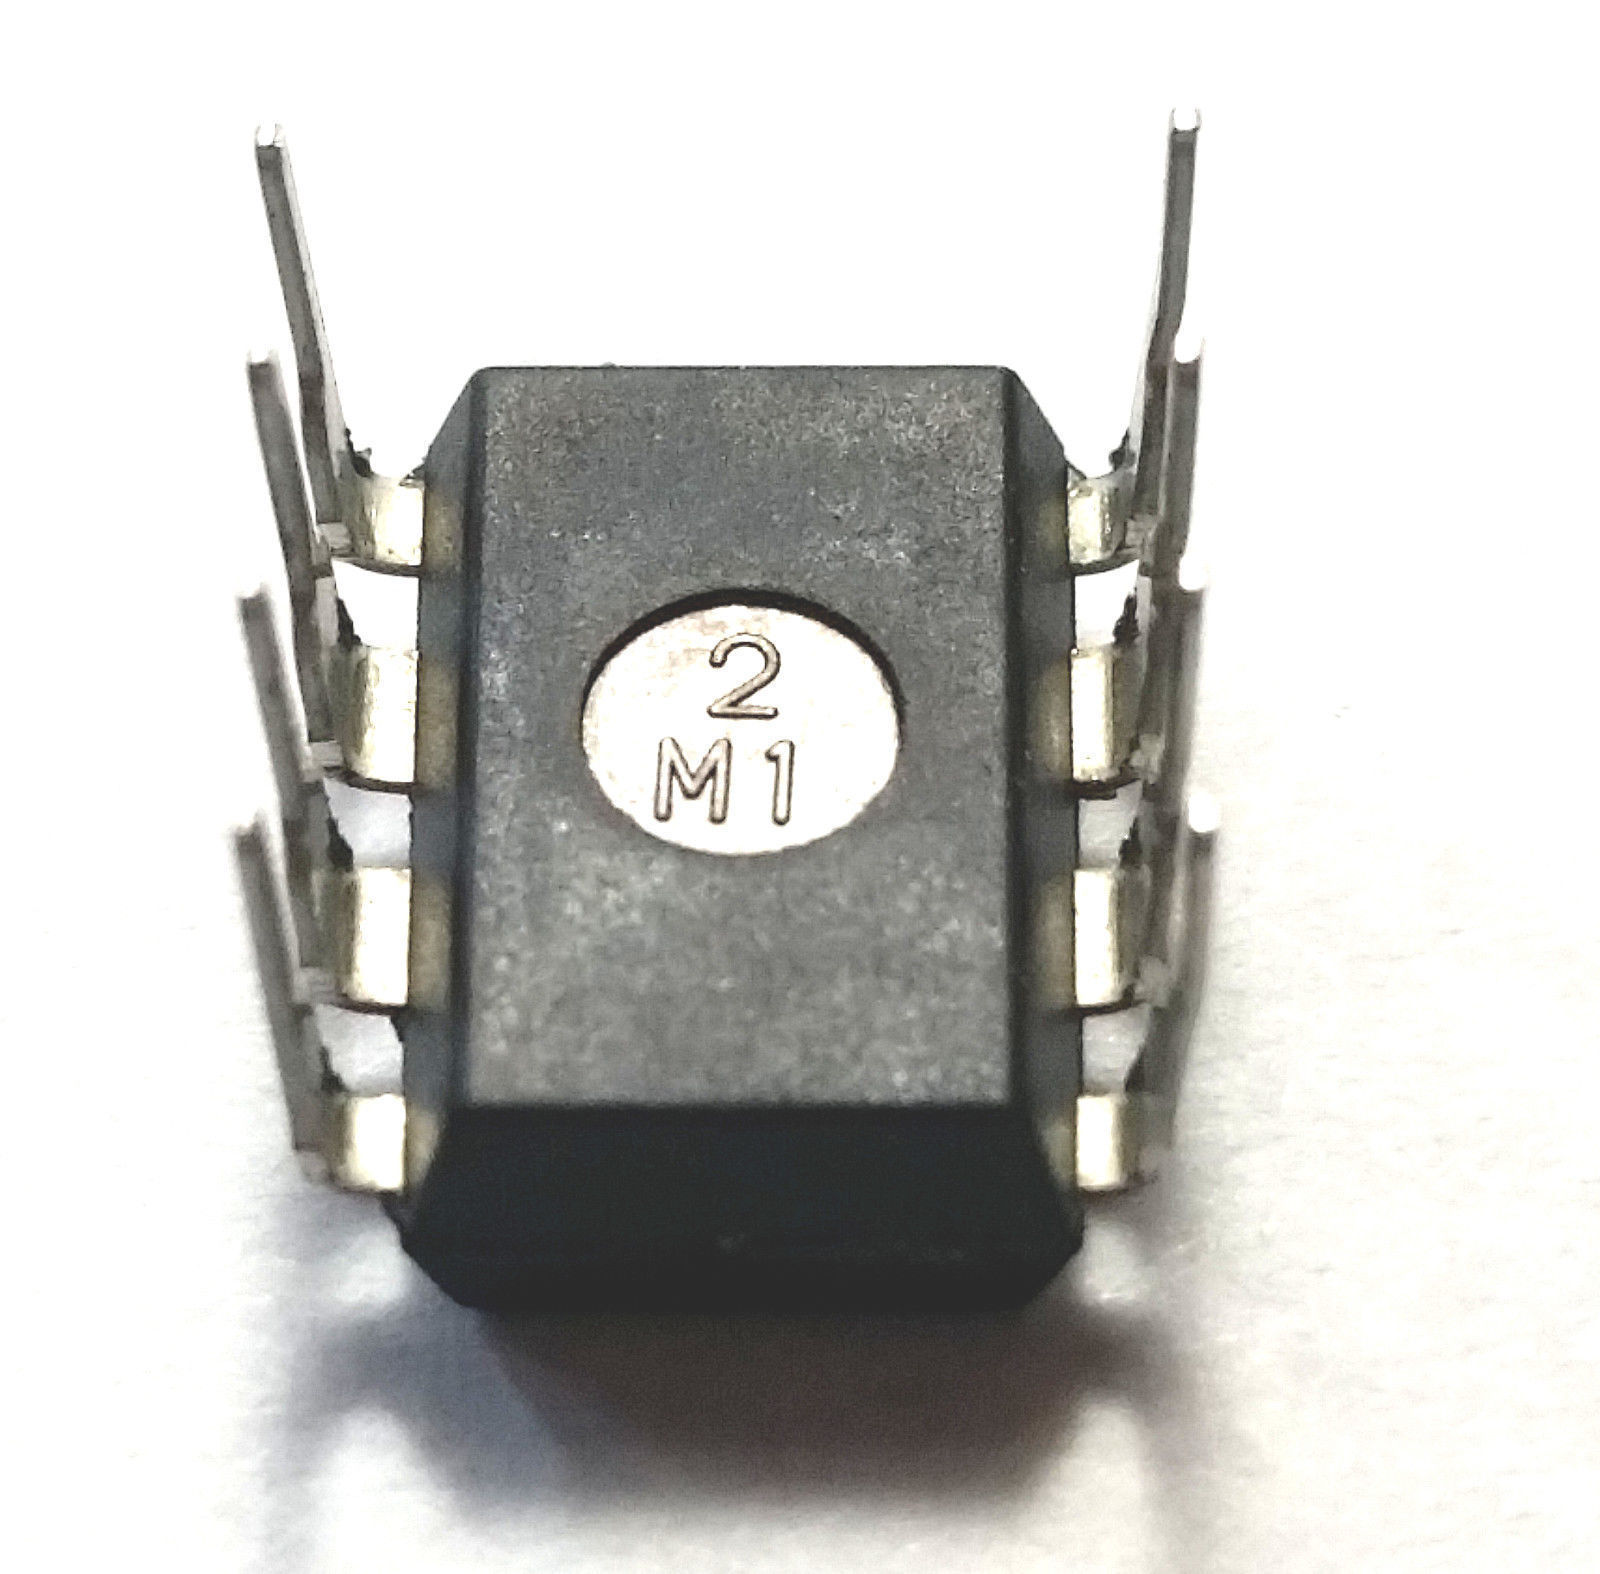 30 x Texas Instruments LM386N-1  Free Shipping - New and Authentic - USA Seller